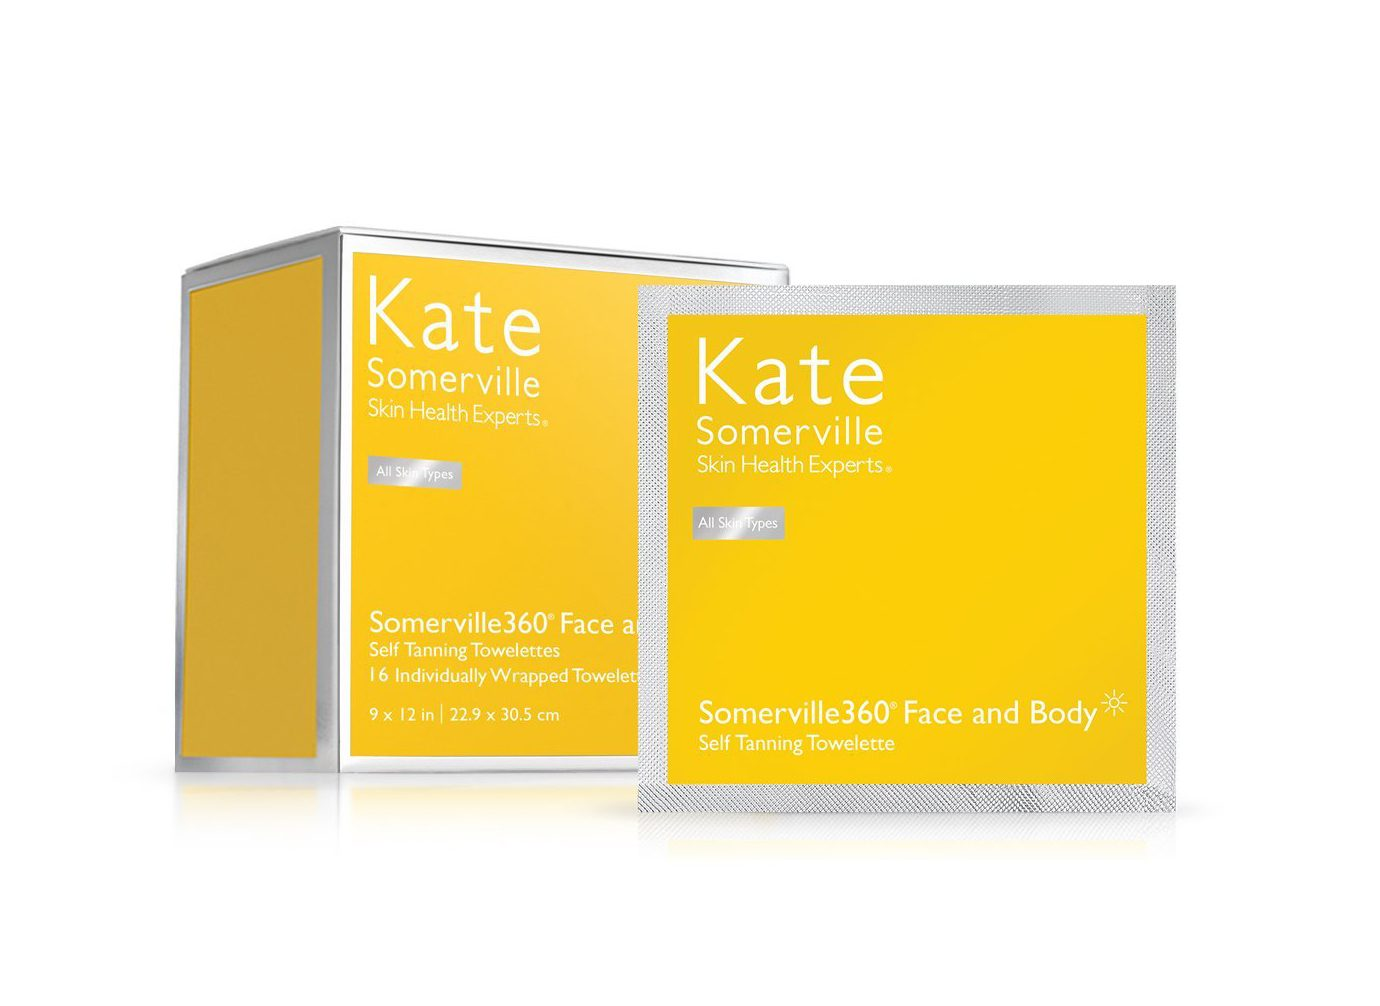 Summer Glow product Kate Somerville Somerville360 Face and Body Self Tanning Towelette